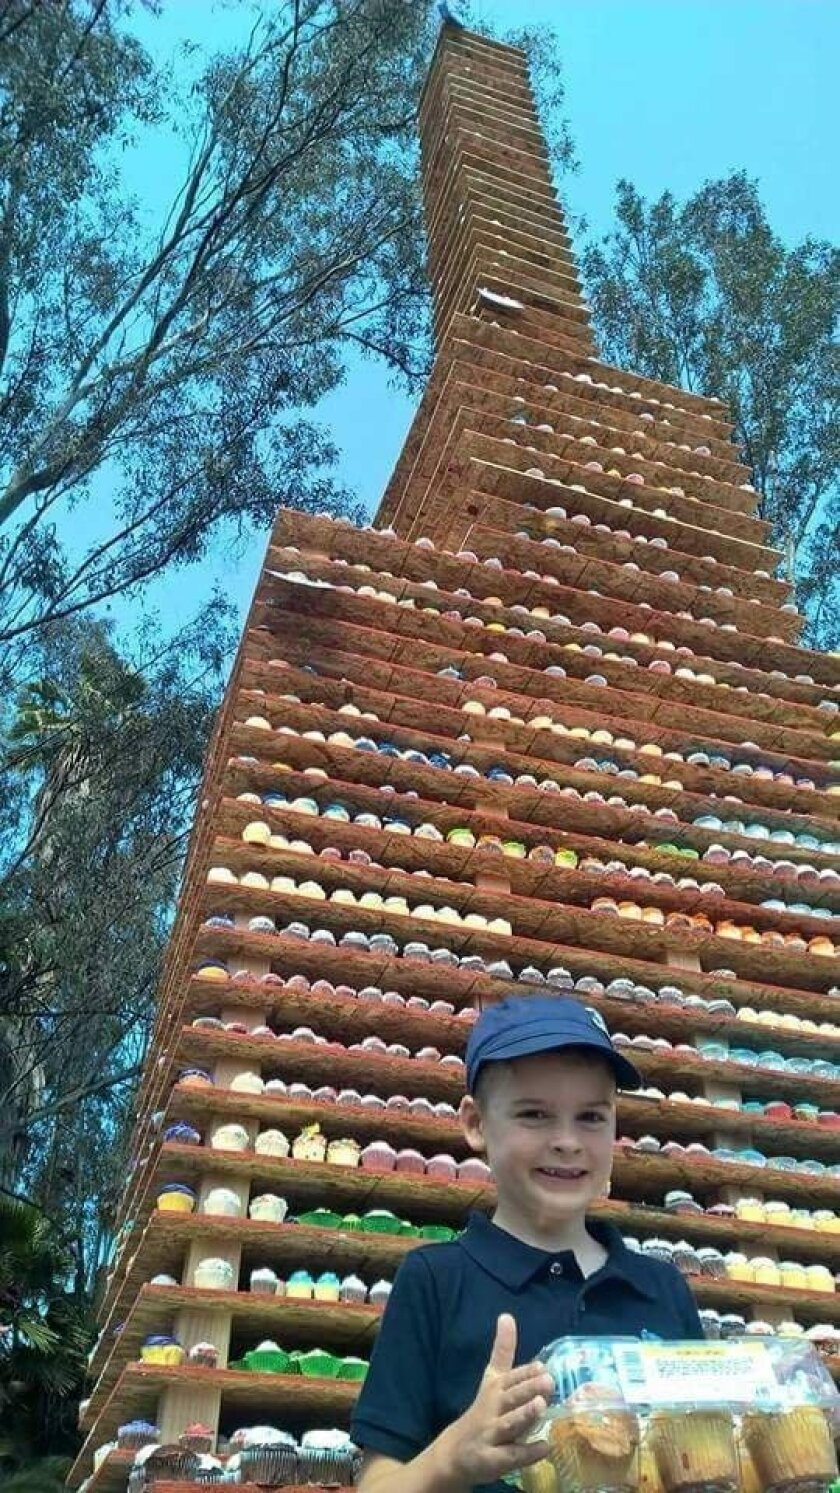 A satisfied customer at what appears to be the world's largest cupcake tower at 31.5 feet with 25,103 cupcakes.